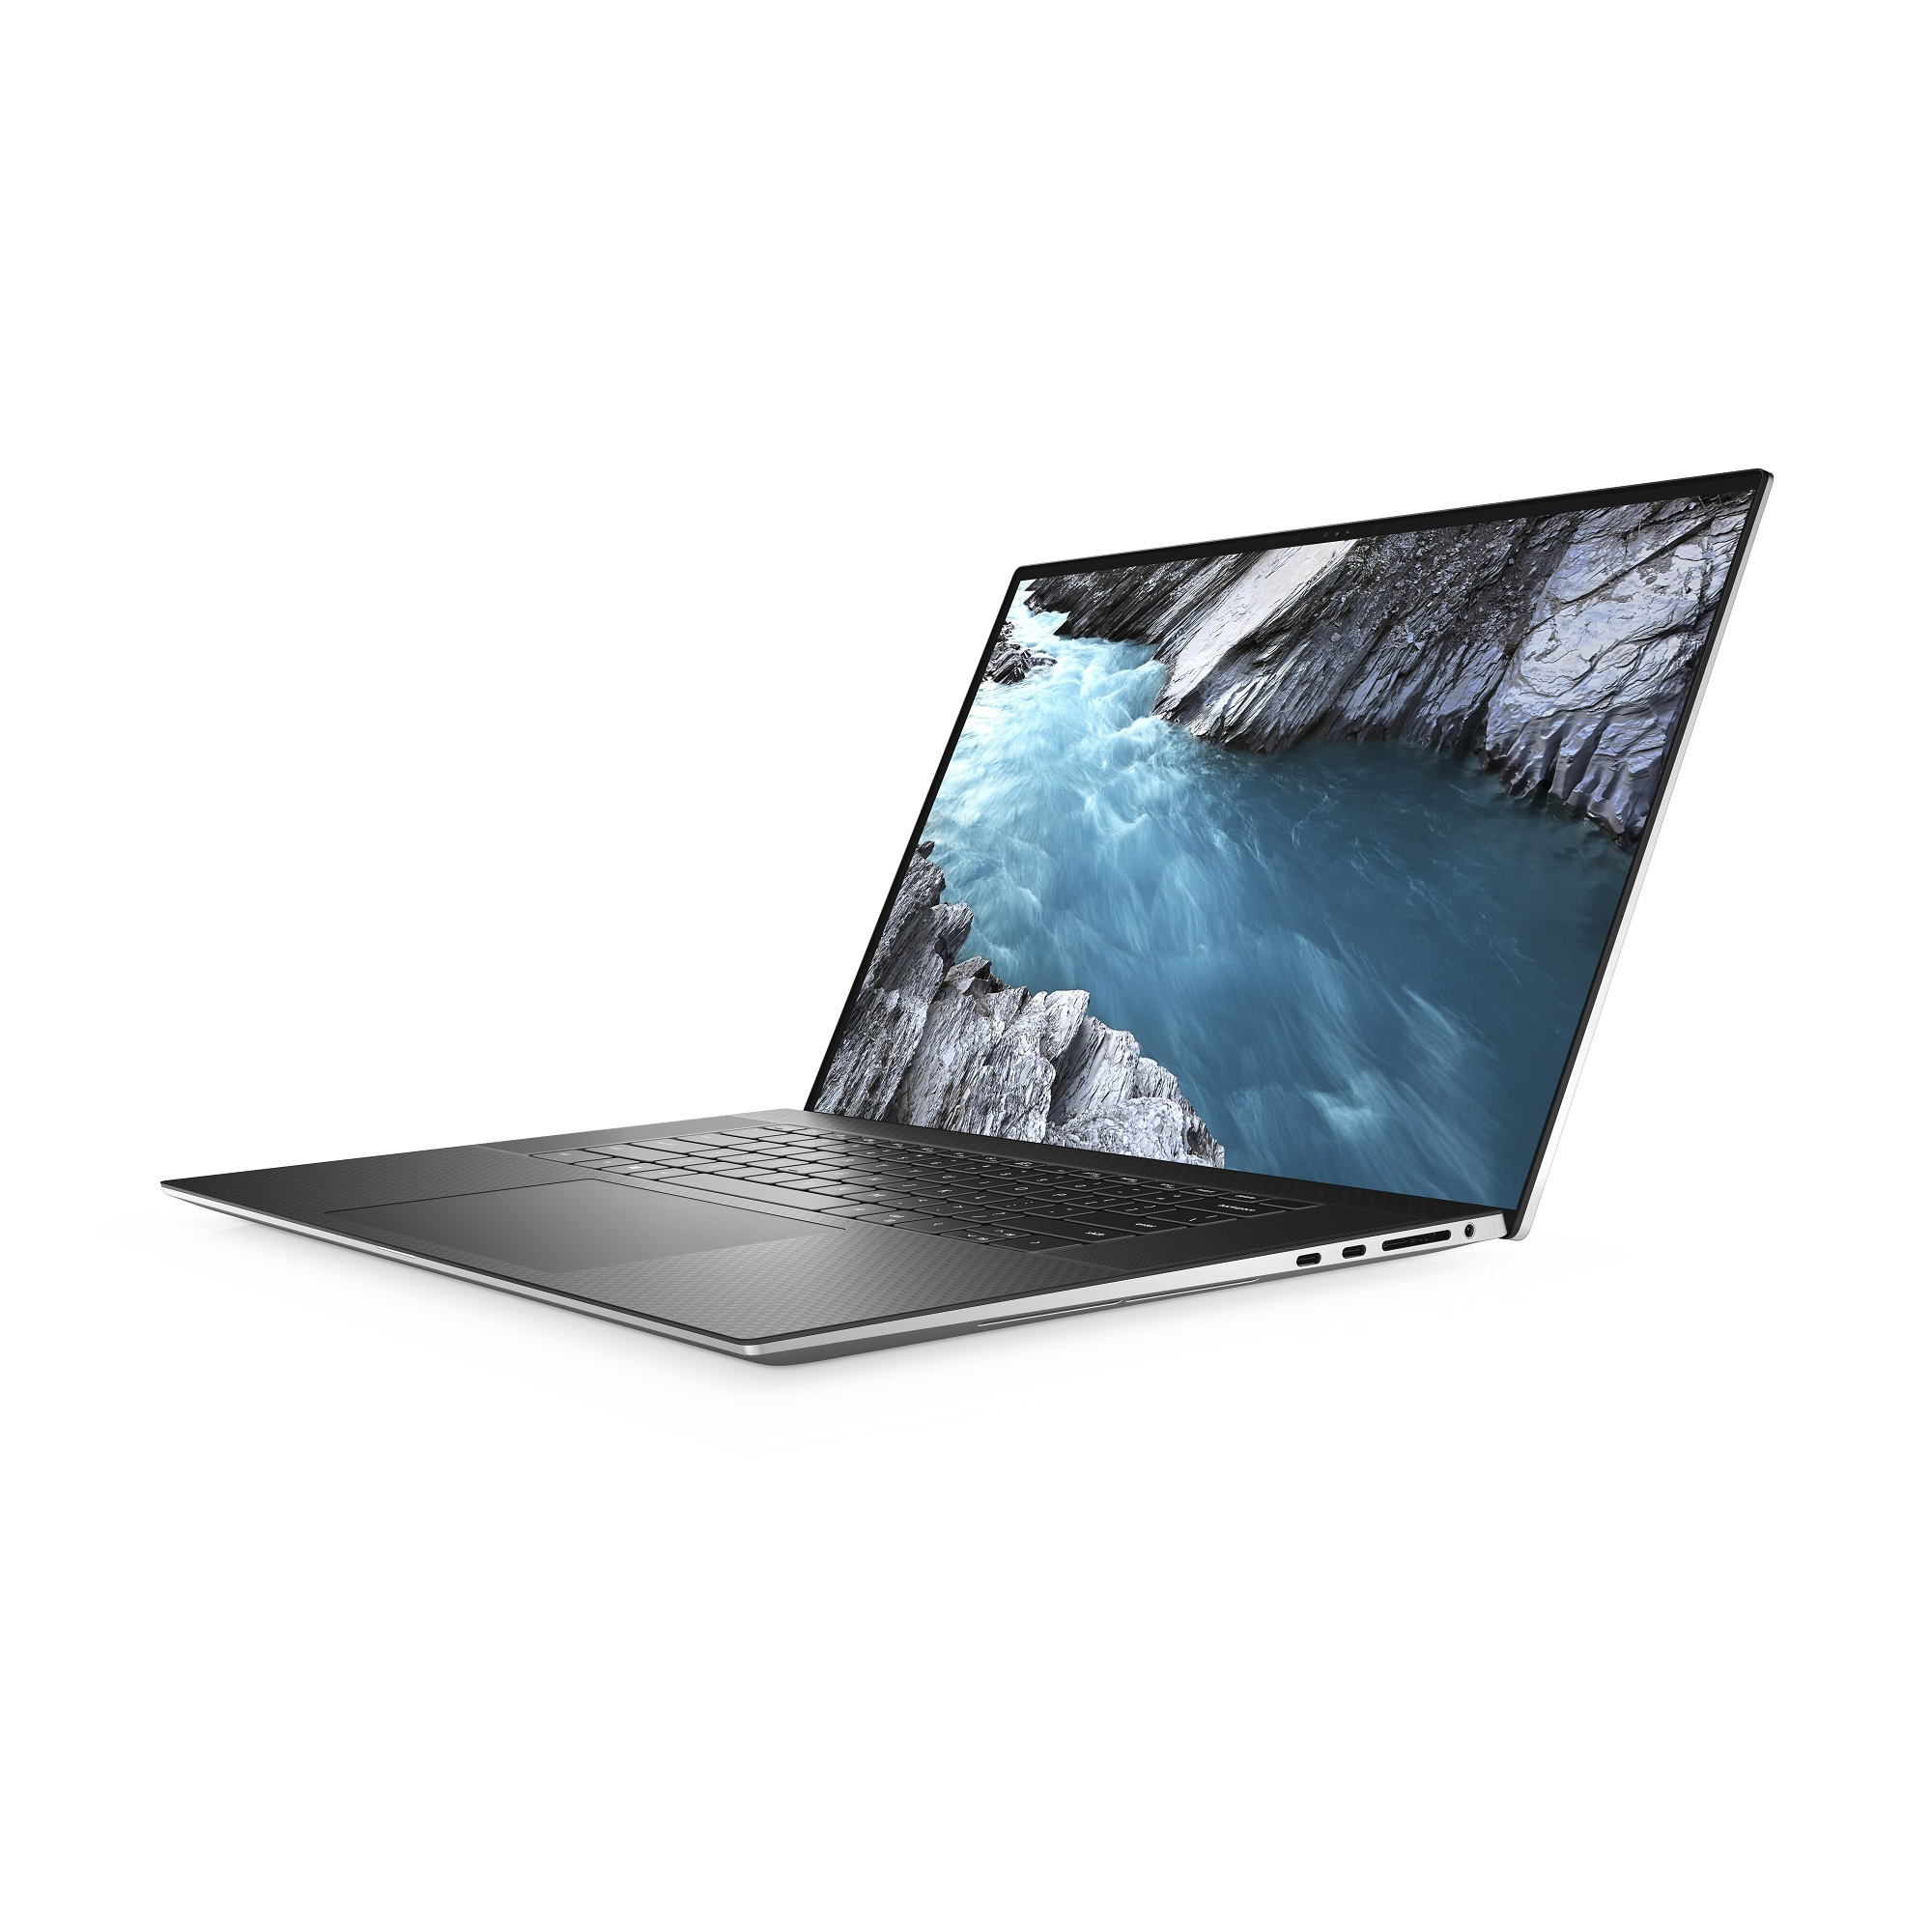 Laptop DELL XPS 17 9700 UHD+ Touch i9-10885H 64GB 2TB RTX2060 FPR BK W10P 3YBWOS srebrny